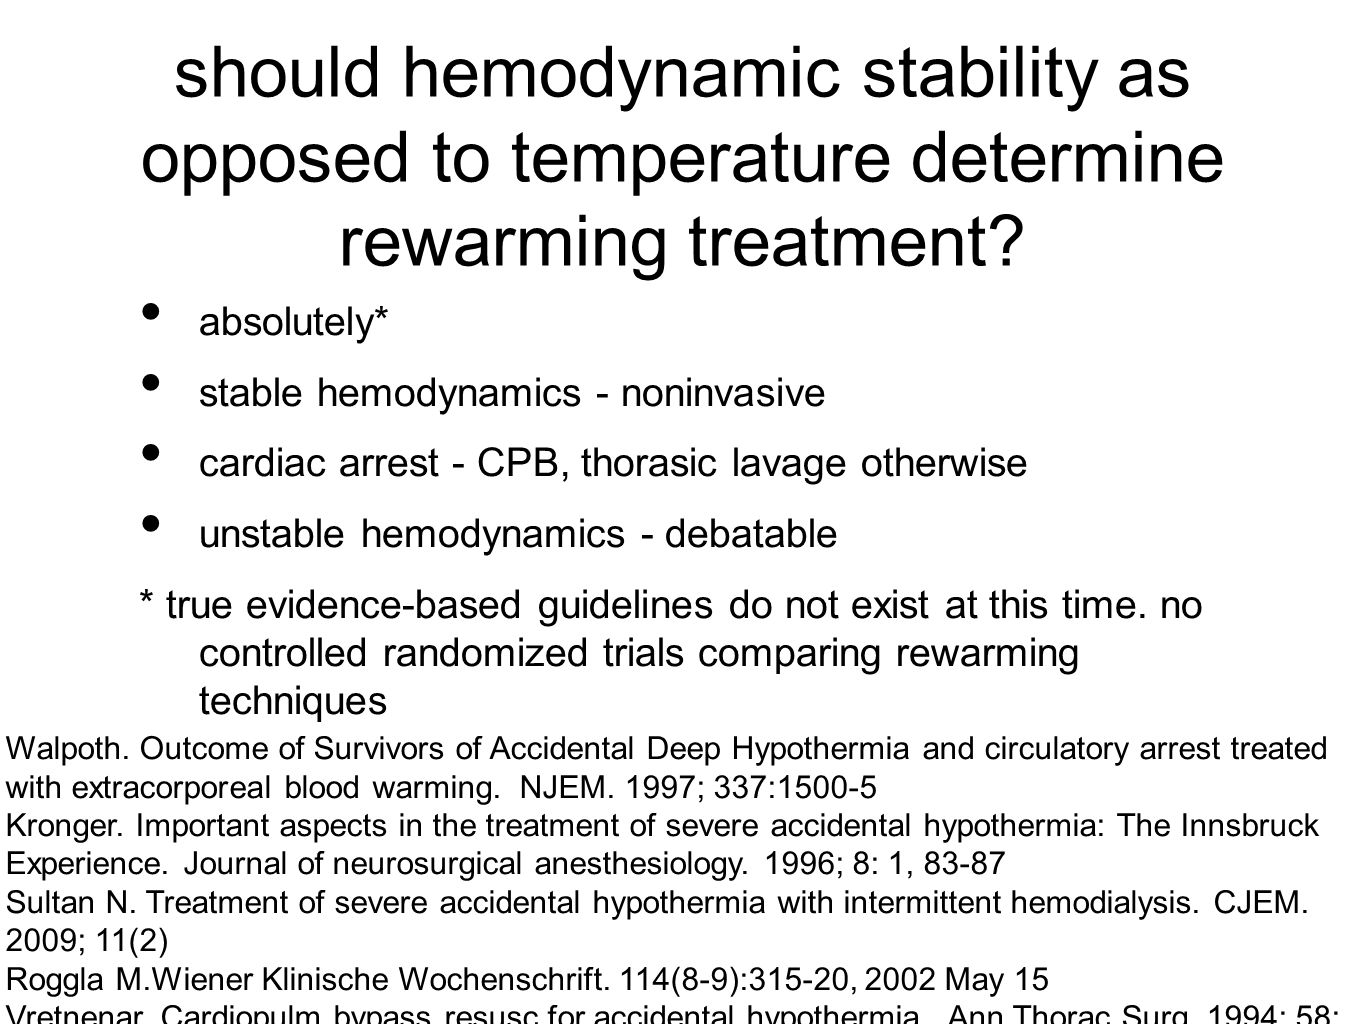 should hemodynamic stability as opposed to temperature determine rewarming treatment.